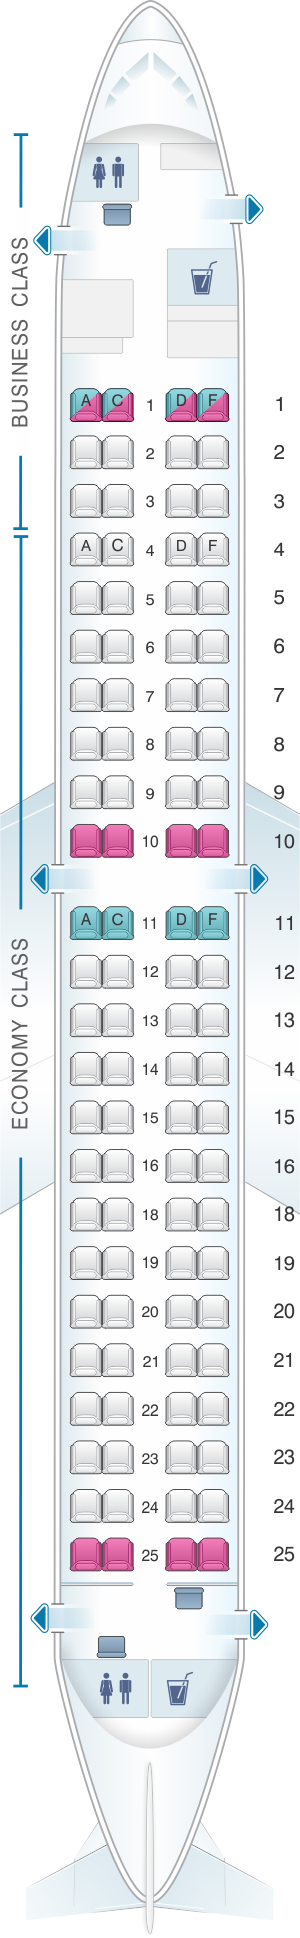 Seat map for Finnair Embraer EMB 190